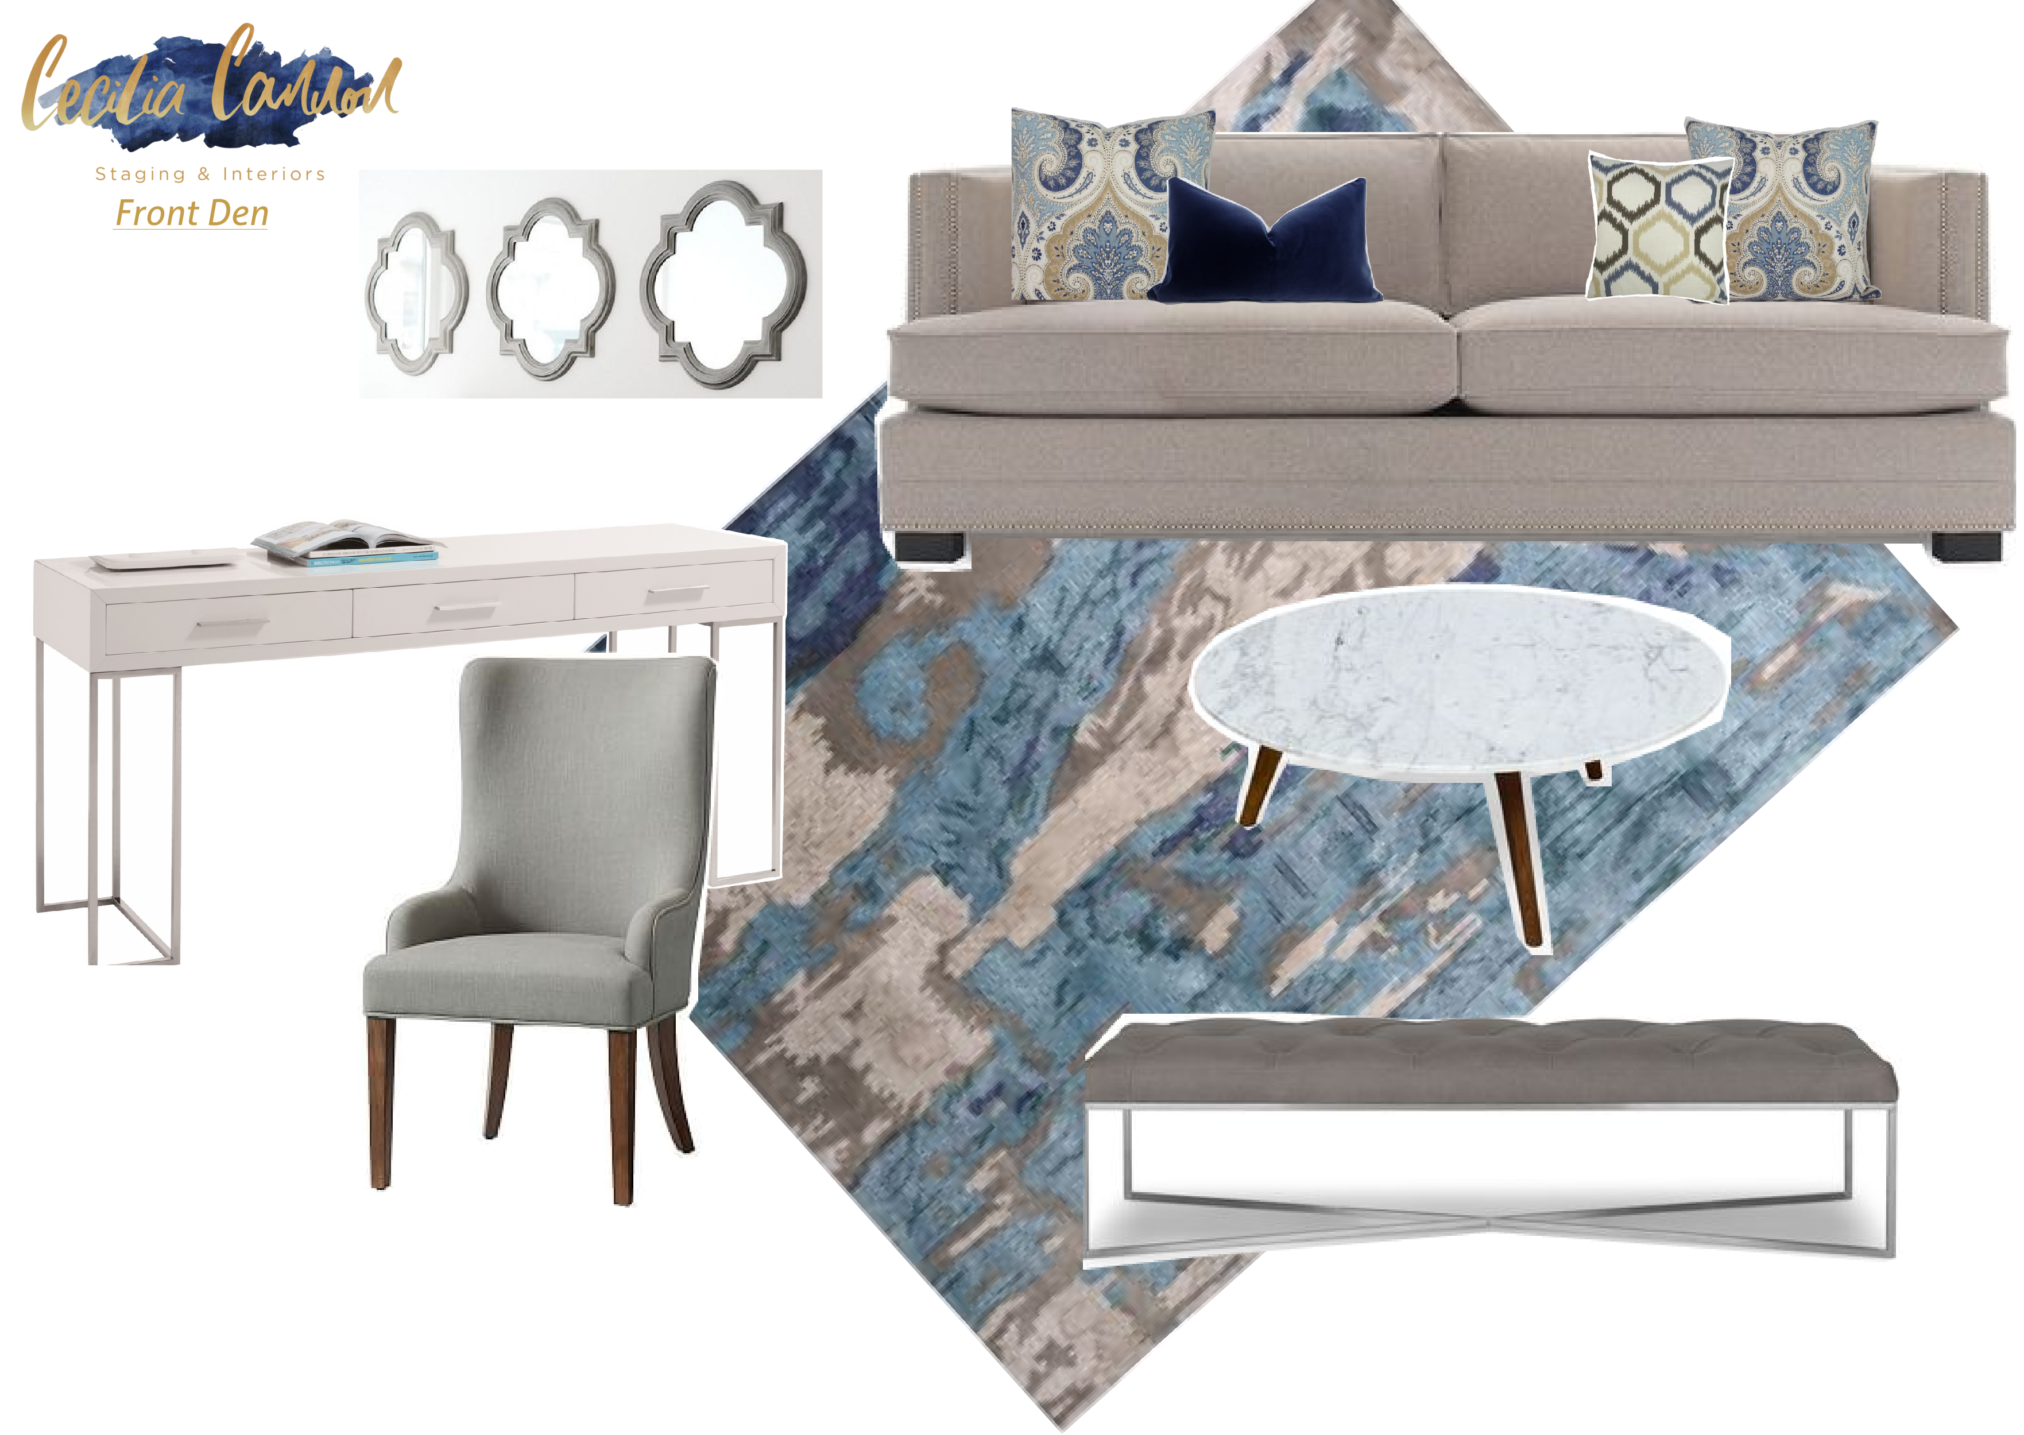 Becoming wayfair homemaker and designing client spaces with products from All Modern and wayfair, like this den. see more at www.homewithkeki.com #interiors #wayfair #design